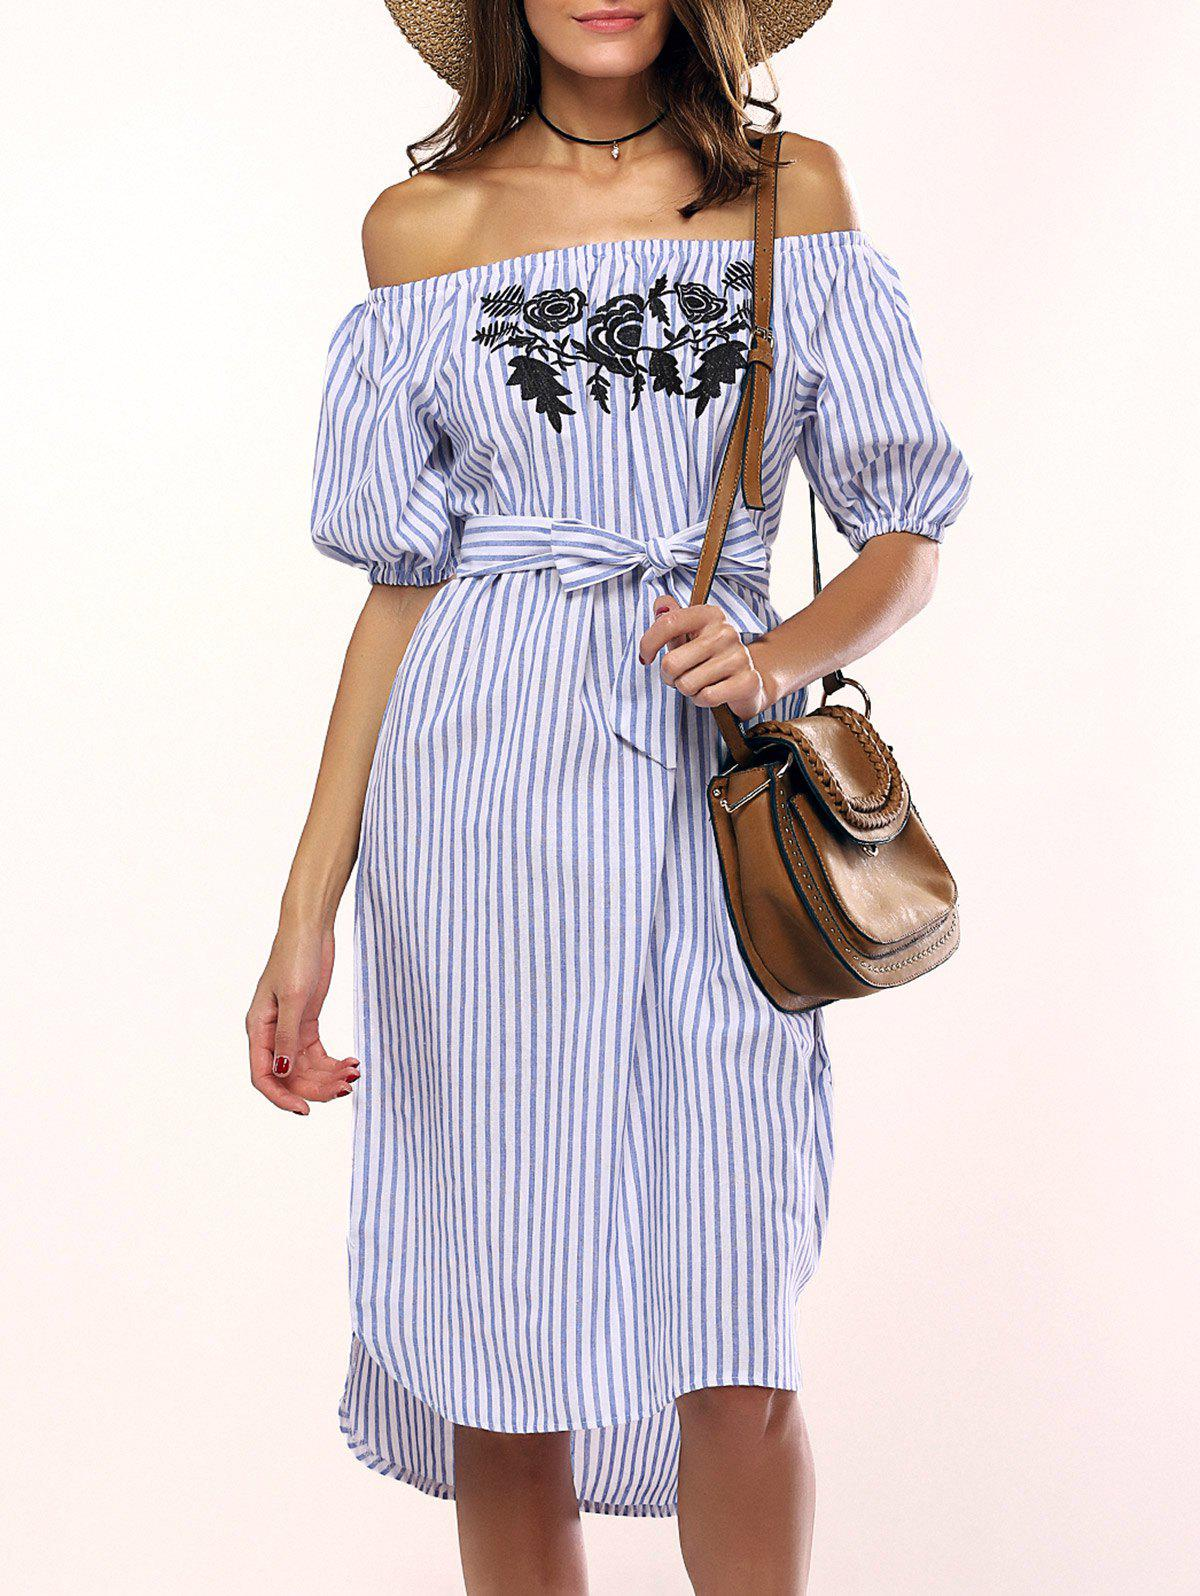 Flowers Striped Off The Shoulder Shirt DressWOMEN<br><br>Size: ONE SIZE; Color: LIGHT BLUE; Style: Brief; Material: Cotton,Polyester; Silhouette: A-Line; Dresses Length: Mid-Calf; Neckline: Off The Shoulder; Sleeve Type: Puff Sleeve; Sleeve Length: Short Sleeves; Embellishment: Flowers; Pattern Type: Striped; With Belt: Yes; Season: Summer; Weight: 0.245kg; Package Contents: 1 x Dress  1 x Belt;